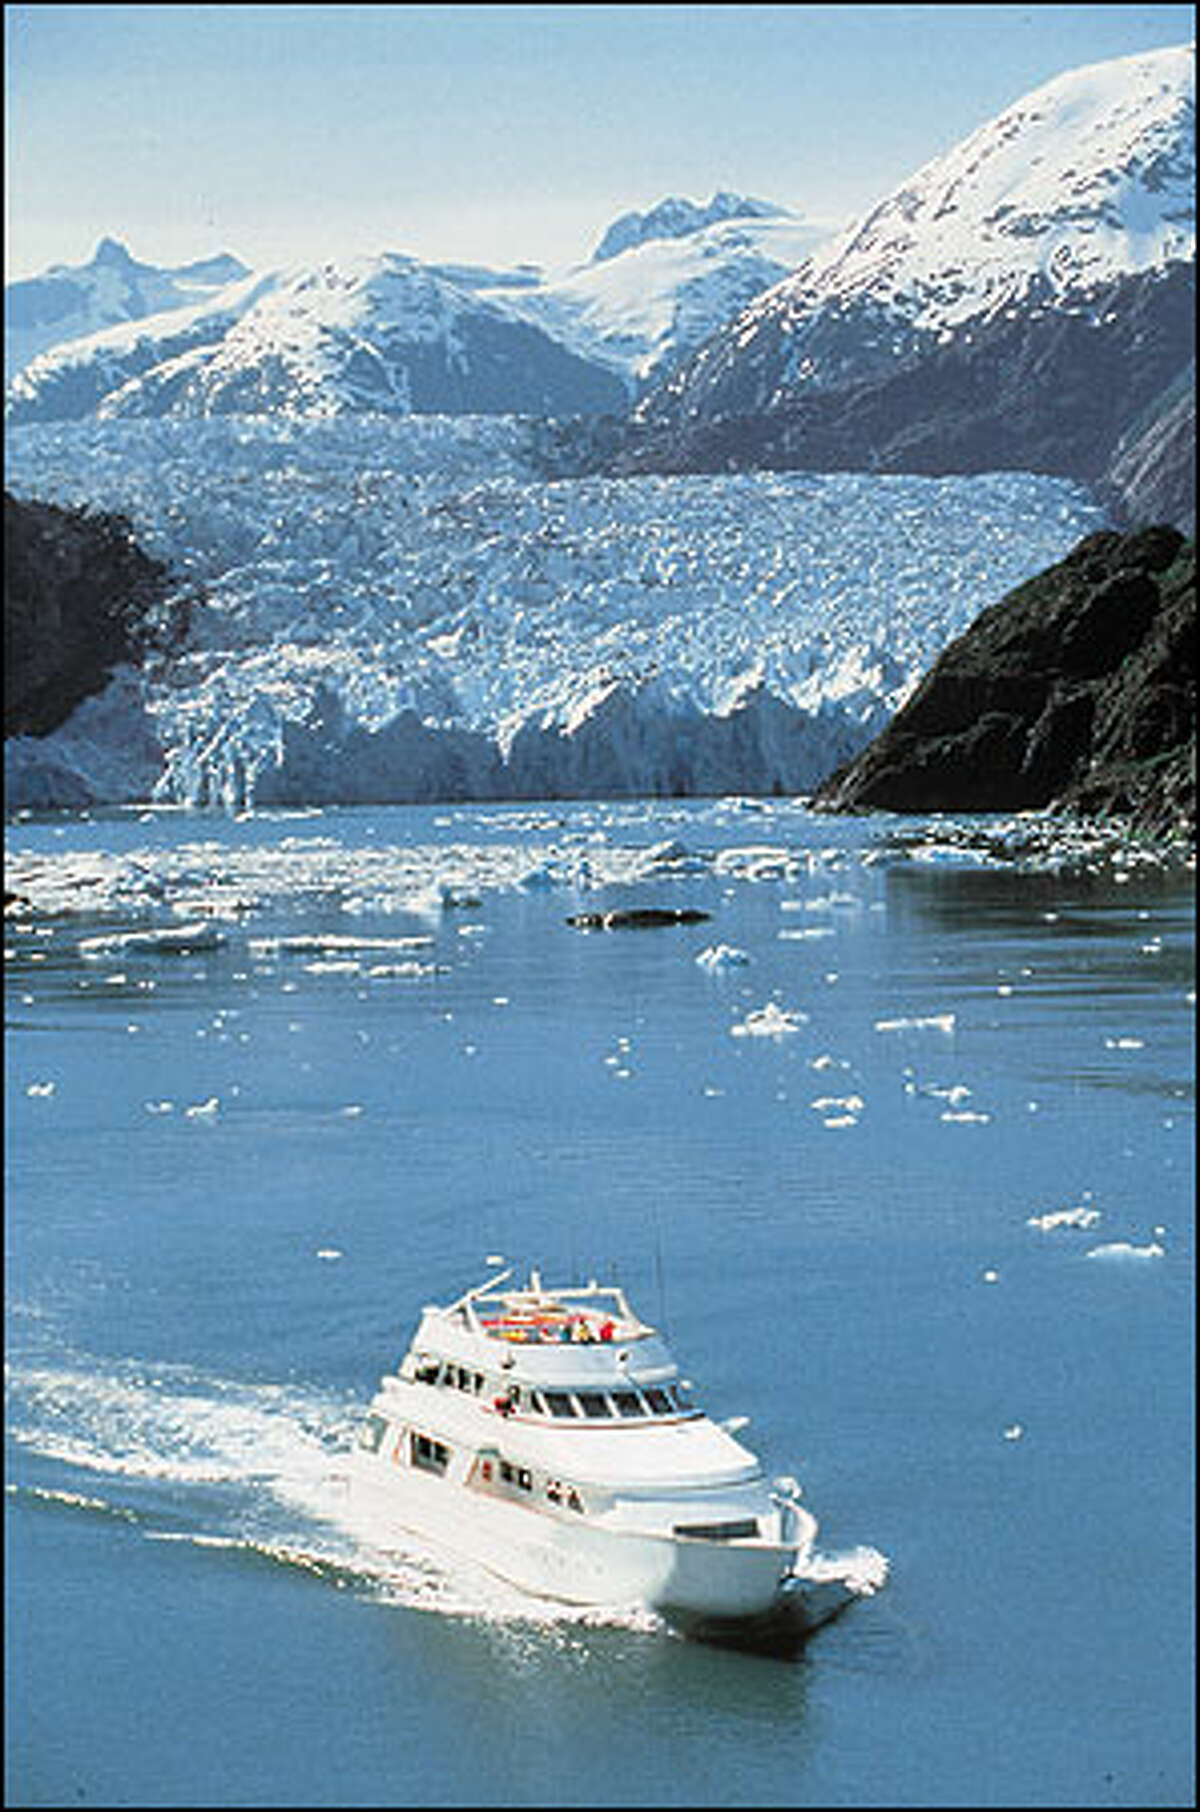 Safari Quest under way in Tracy Arm, Alaska. American Safari Cruises photo.